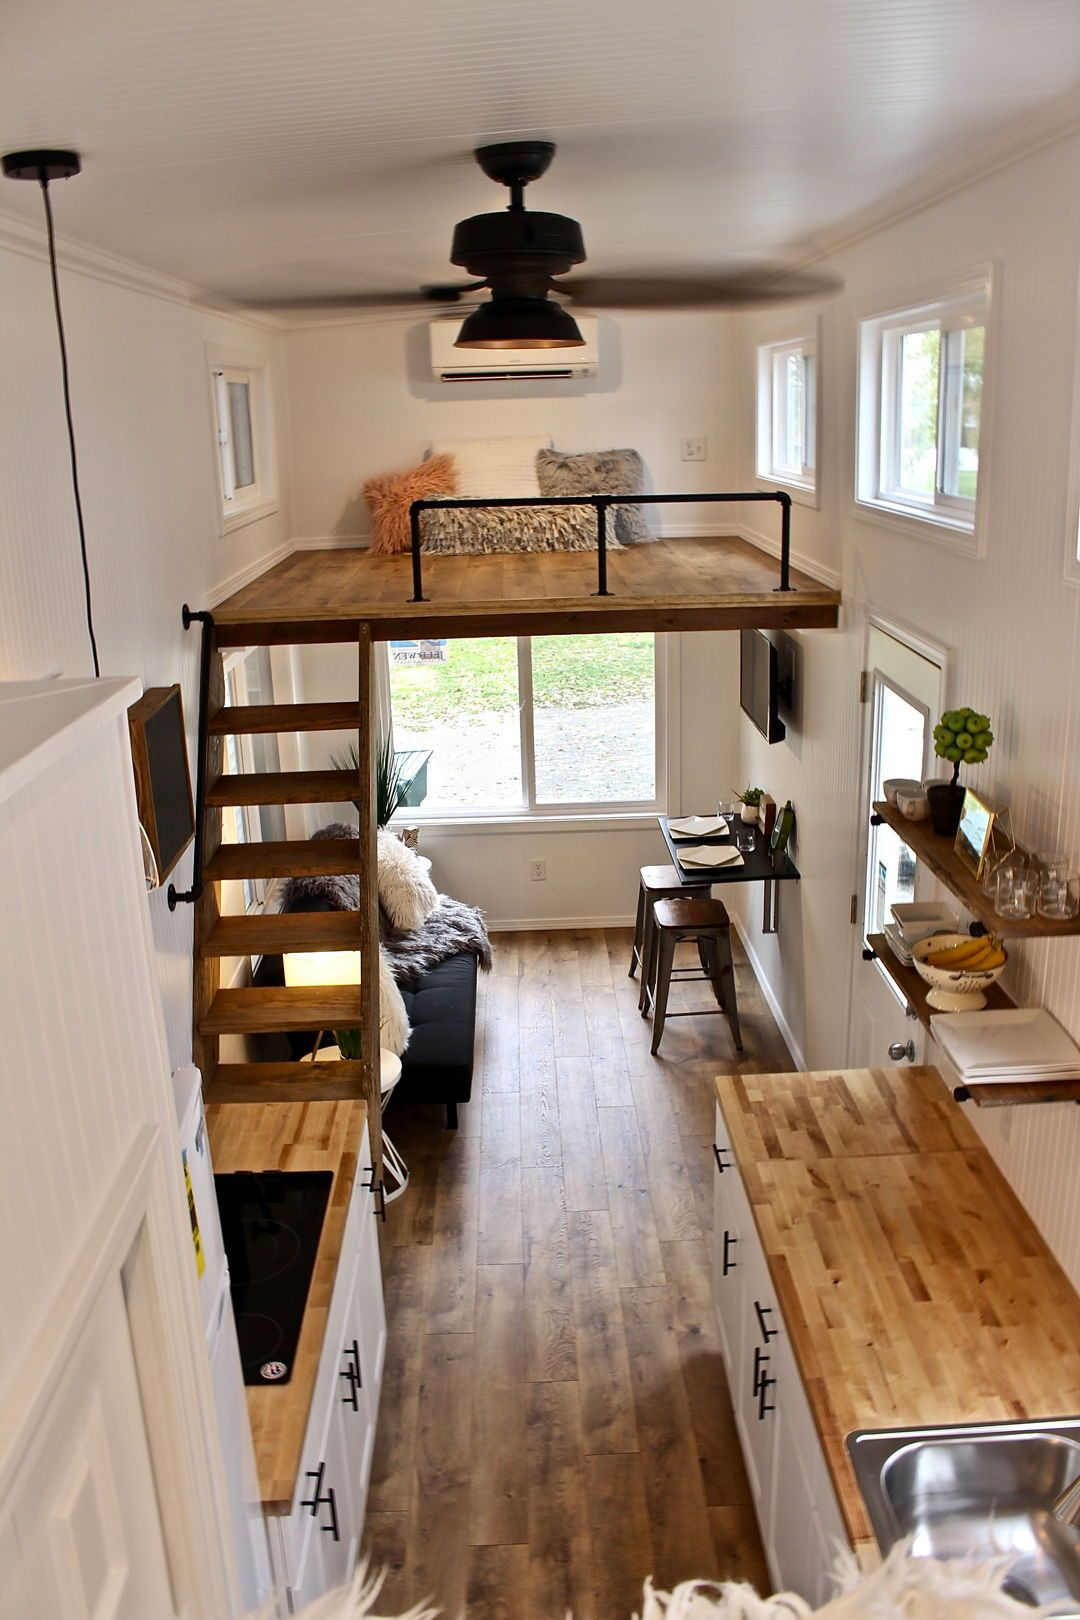 Chateau Shack By Mini Mansions Tiny House Interior Design Best Tiny House Tiny House Plans